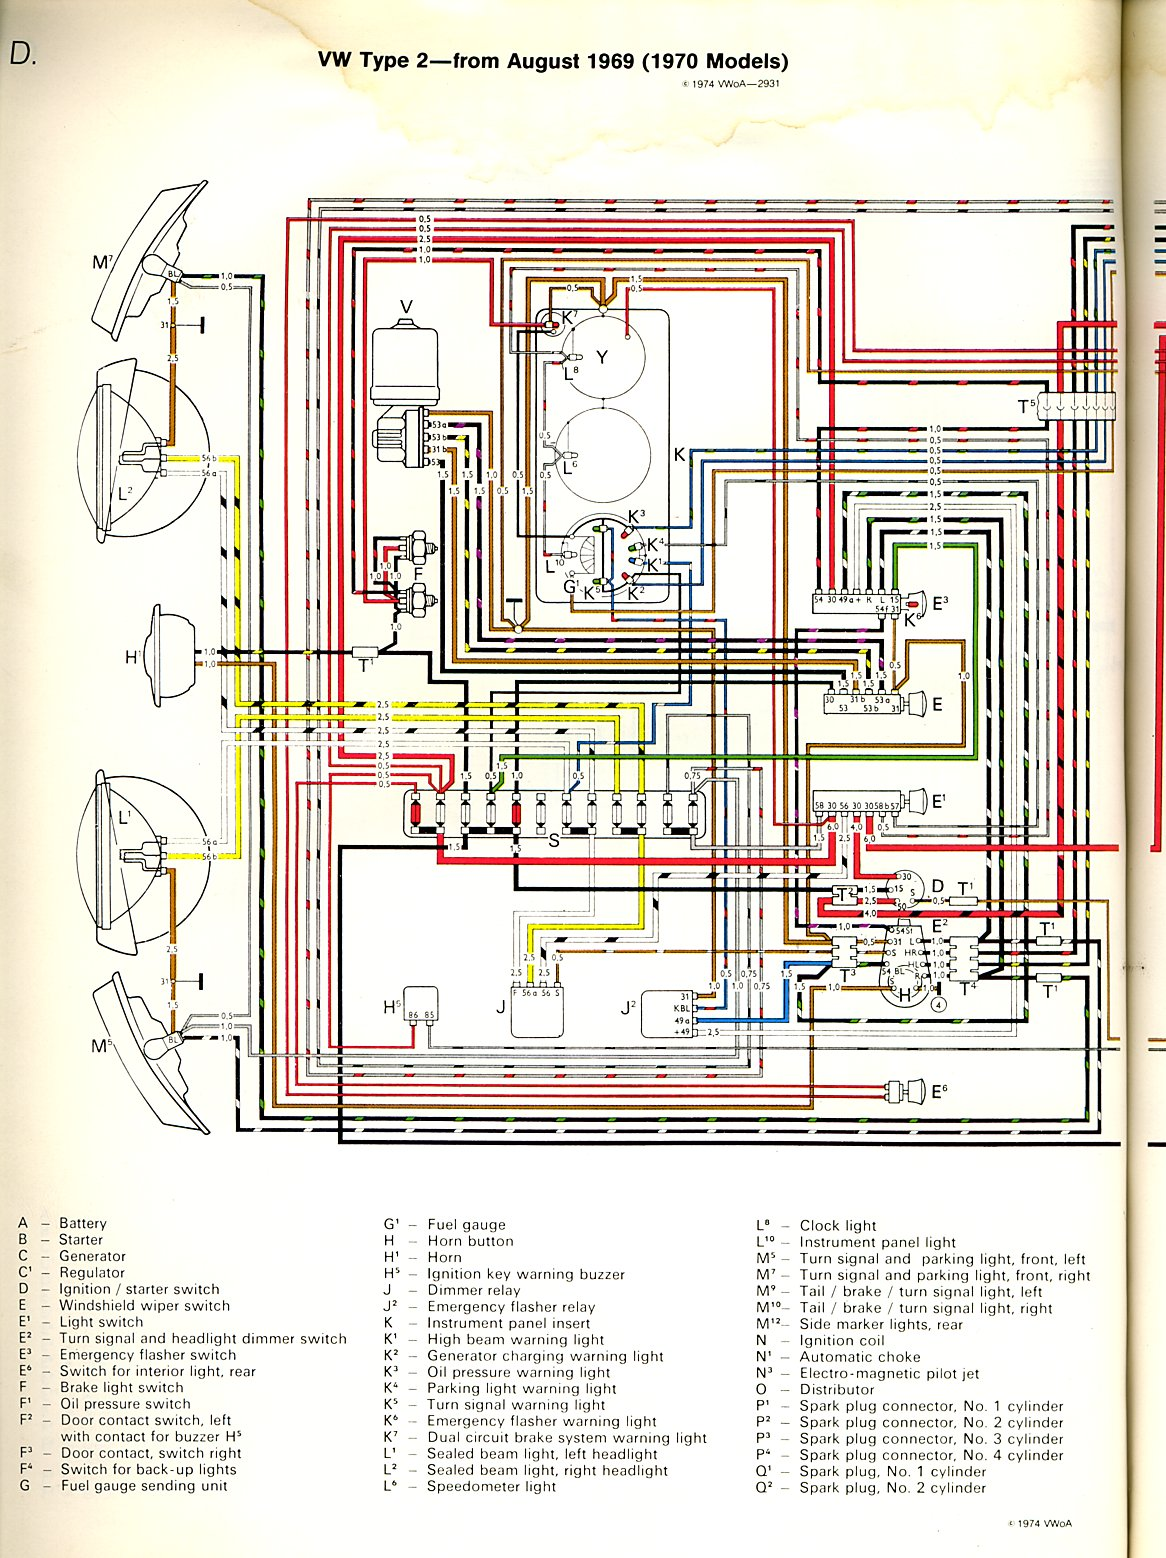 baybus_70a thesamba com type 2 wiring diagrams 77 corvette wiring diagram at reclaimingppi.co